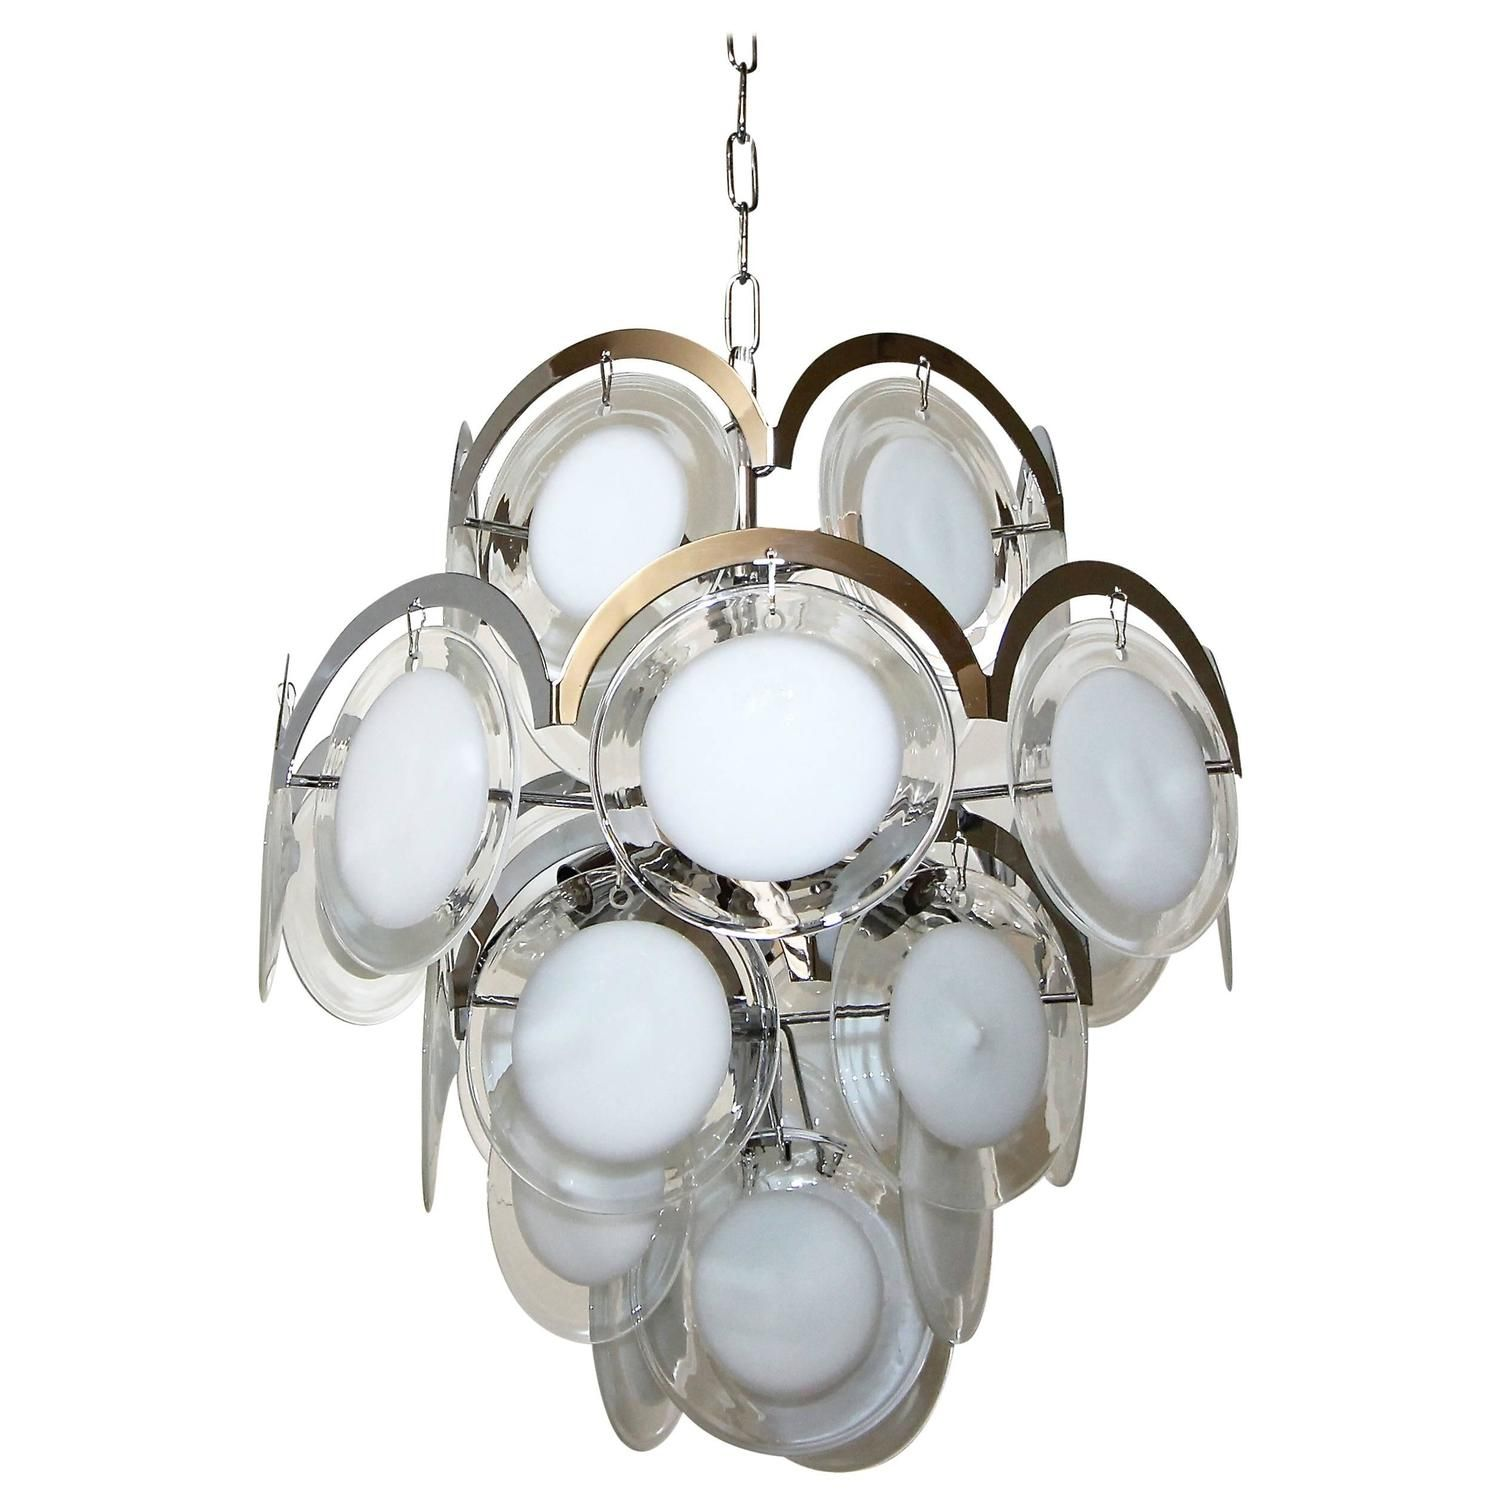 Vistosi chandelier with clear and white glass discs pendant